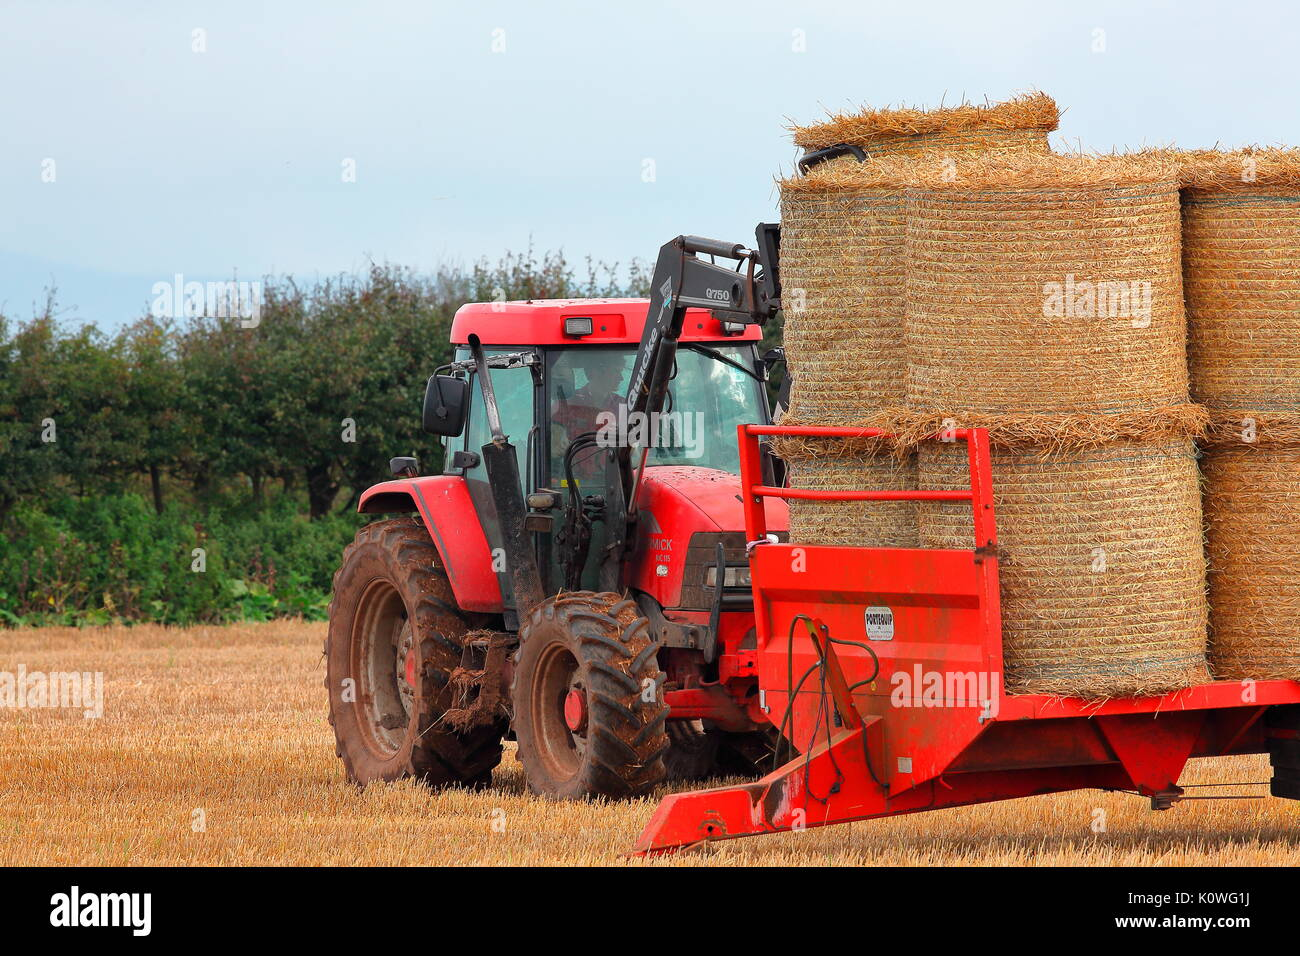 A farmer collects his round straw bales from a field with his specially adapted tractor with a grab for picking up the huge bales and rotating them. - Stock Image